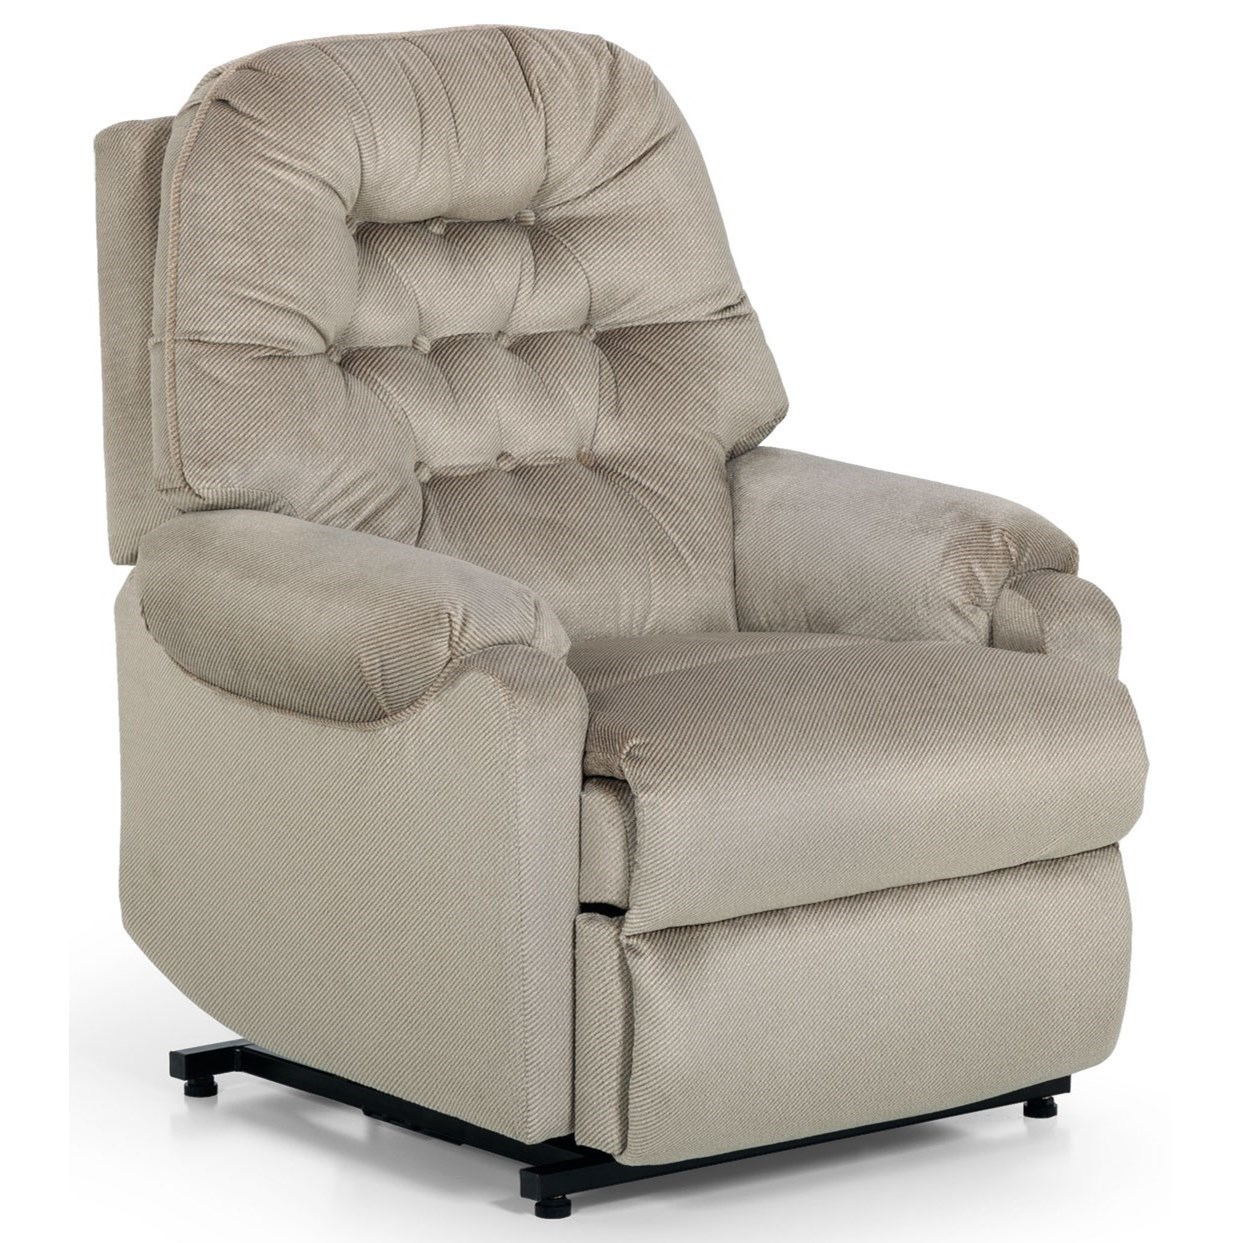 873 Swivel Glider Recliner by Stanton at Rife's Home Furniture